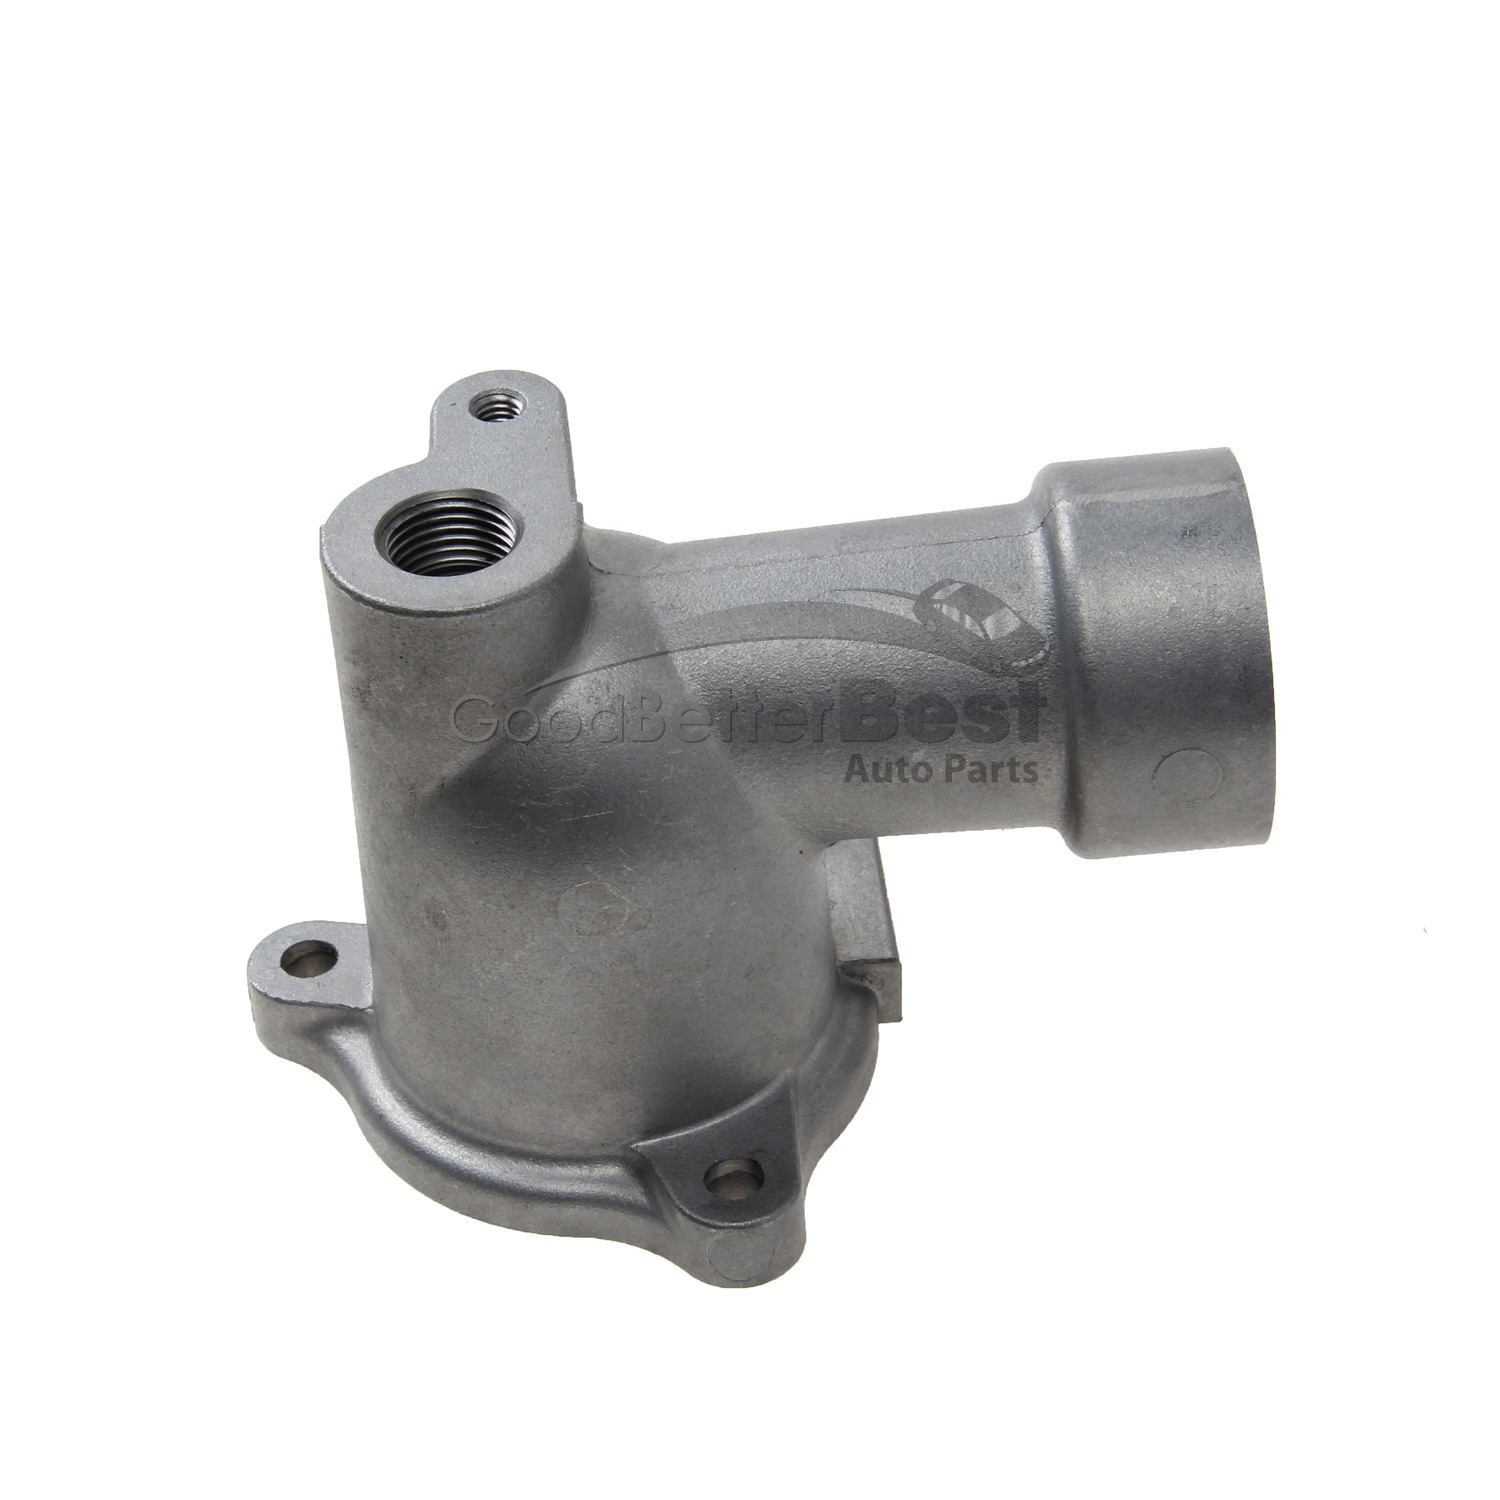 Engine Coolant Thermostat Housing Genuine New 1632115040 Fits Toyota Corolla